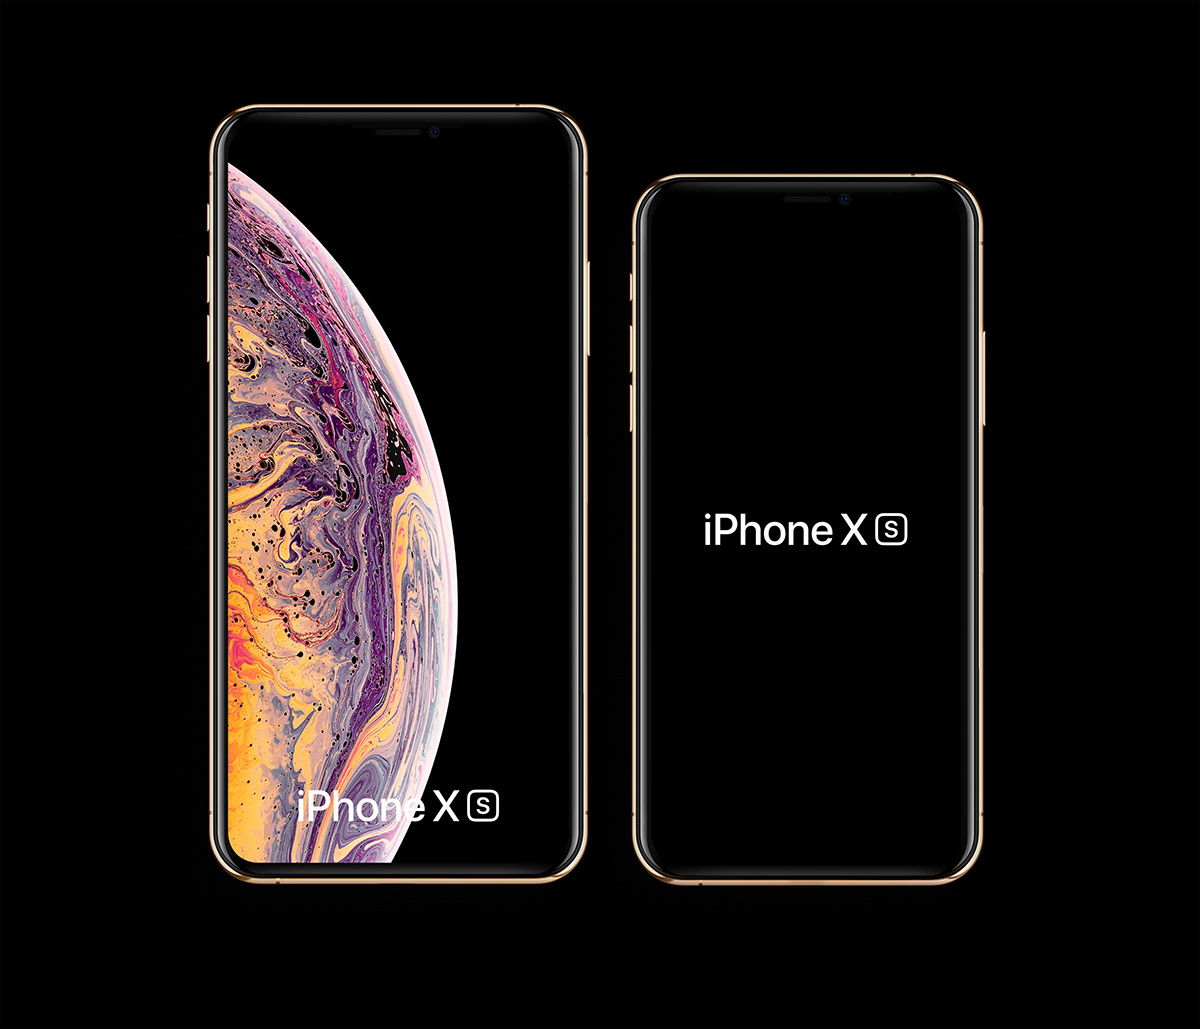 Mockup gratis de iPhone xS